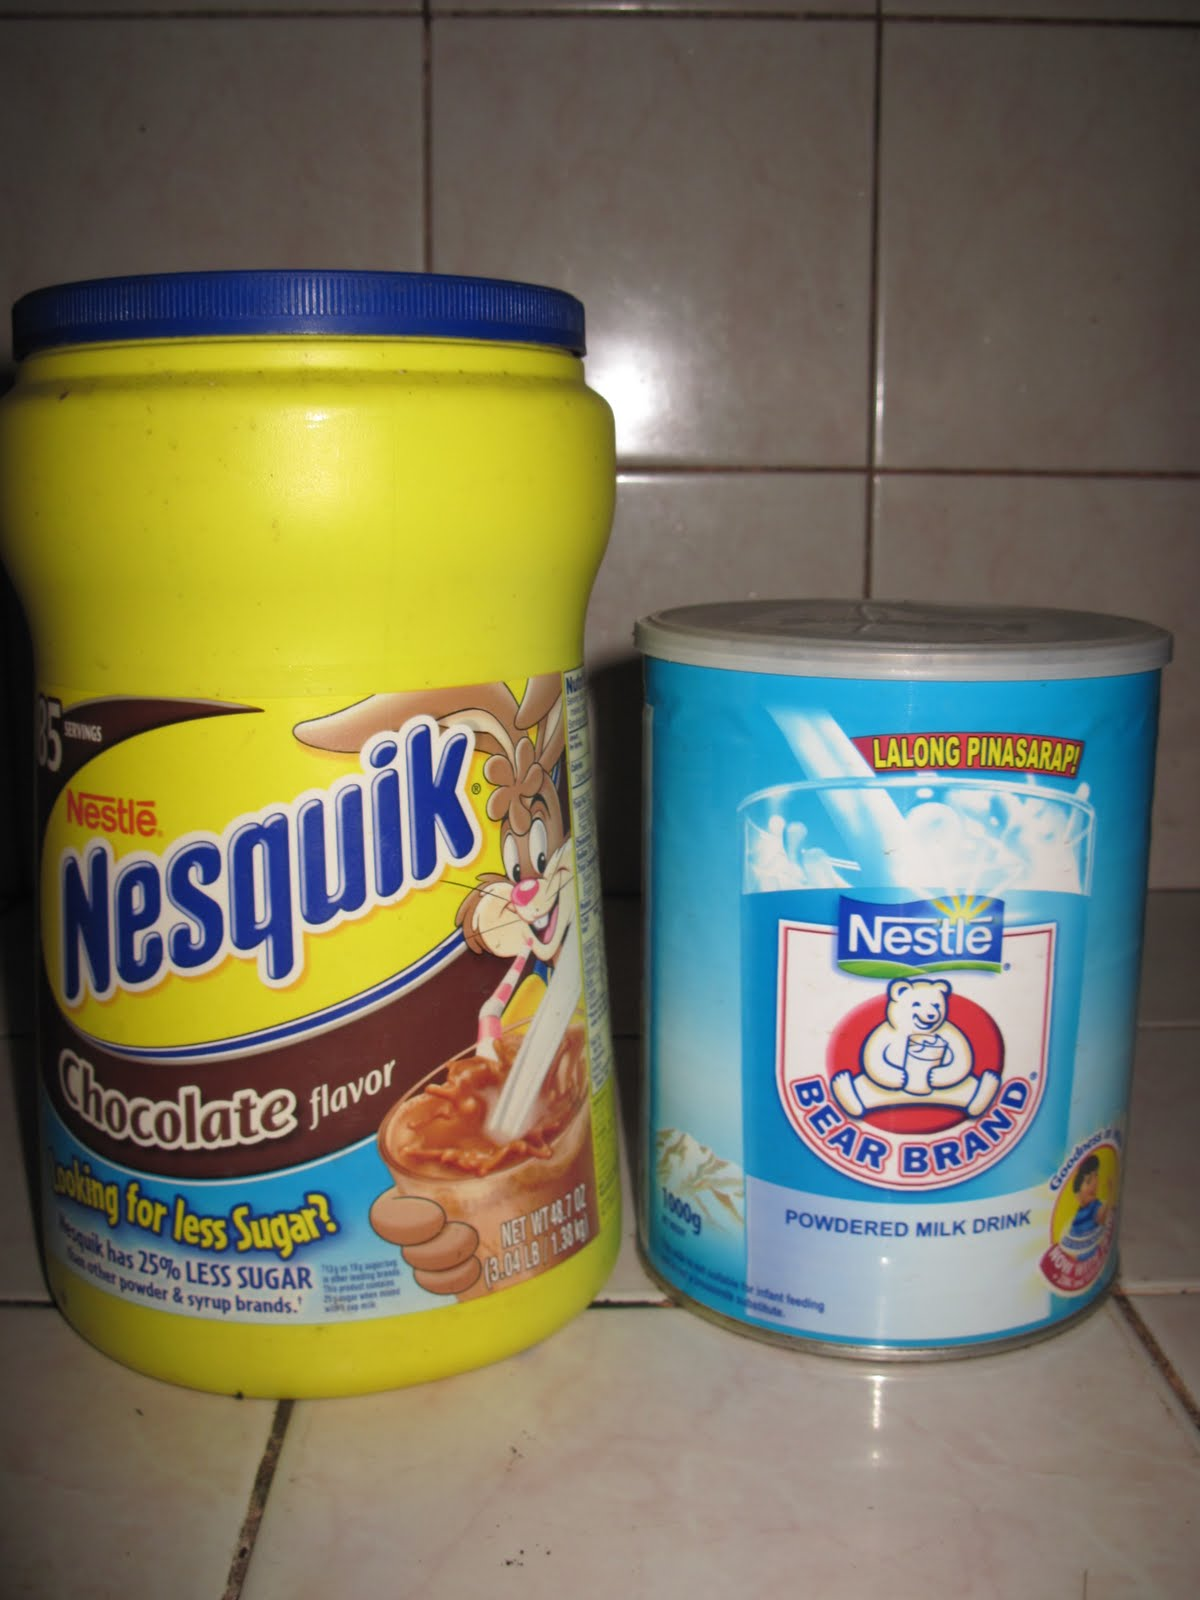 U555u | Images: Chocolate Milk Powder Brands